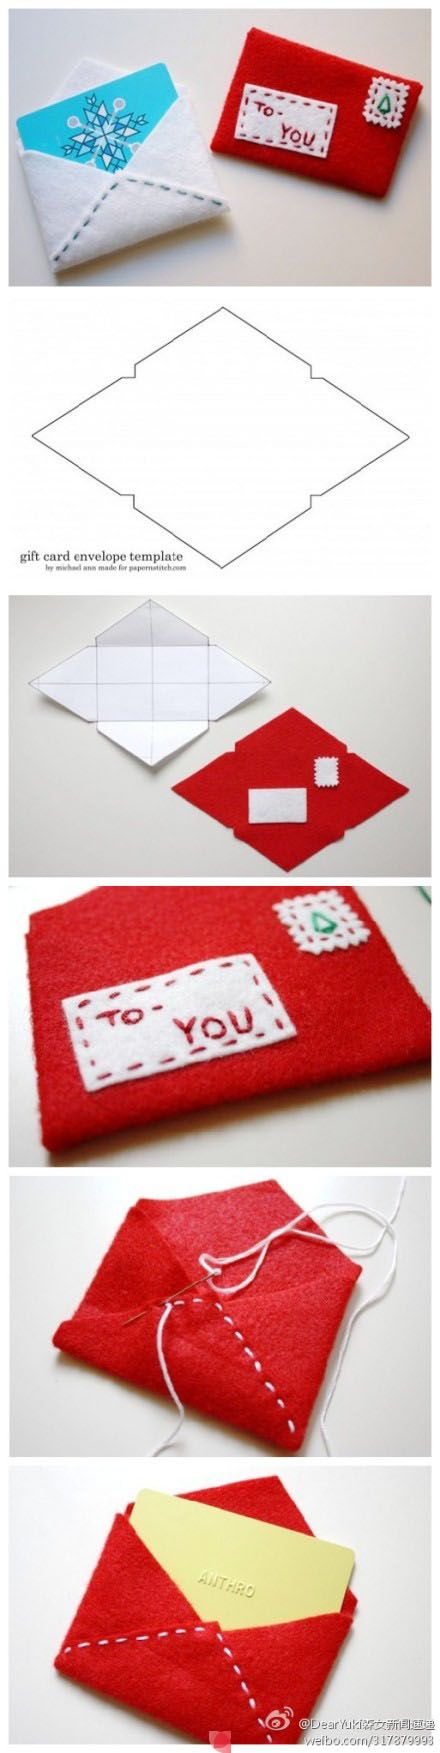 Very cute little envelopes,  Great way to package a small gift - like a pair of earrings or  even a gift card